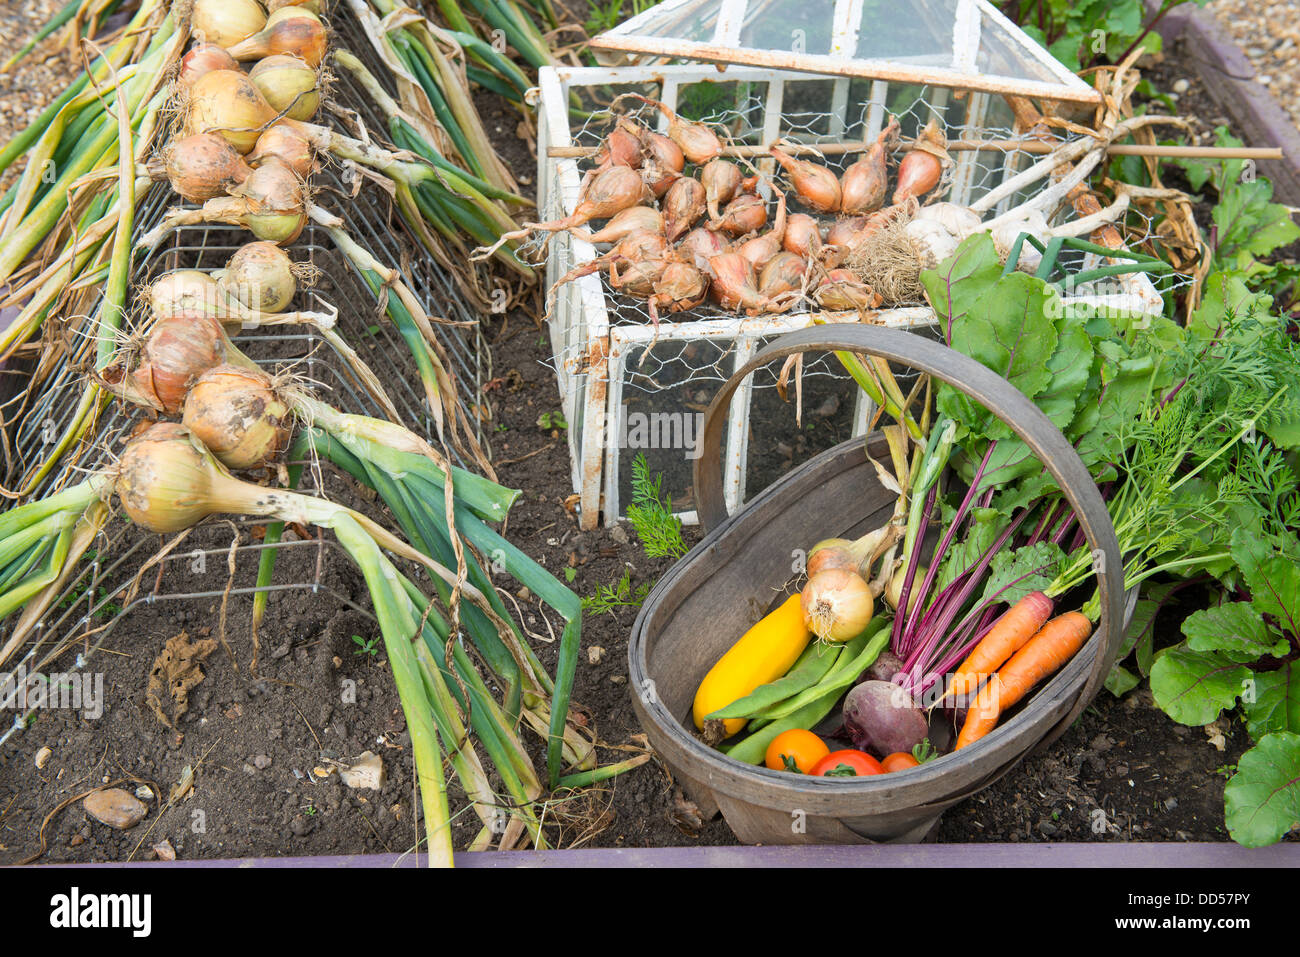 Late summer garden raised beds with drying onion crop and trug of